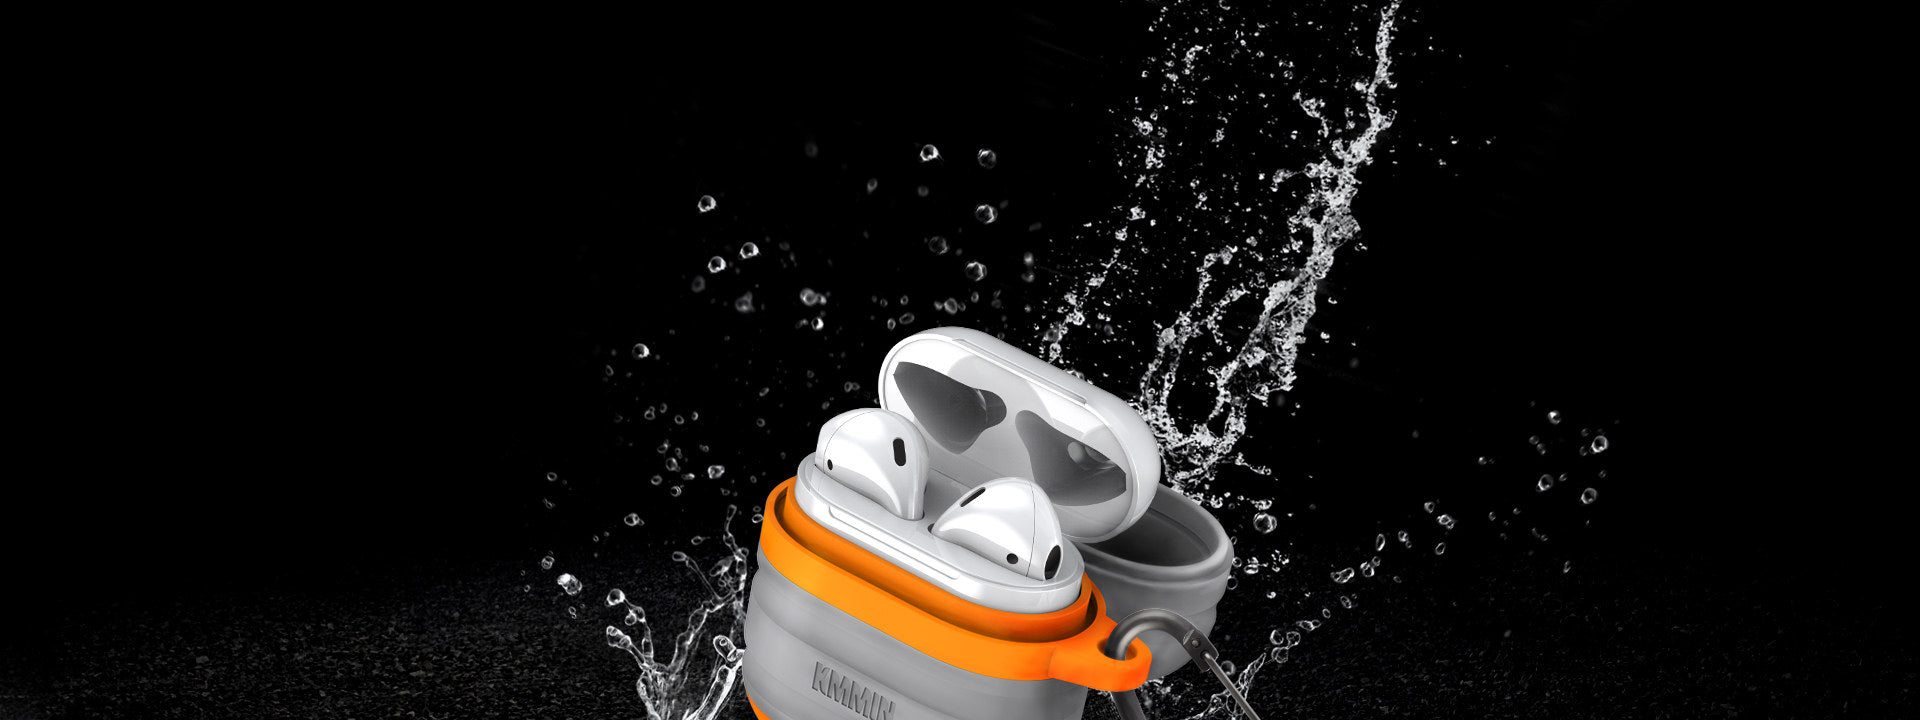 IP67 waterproof airpods case protection